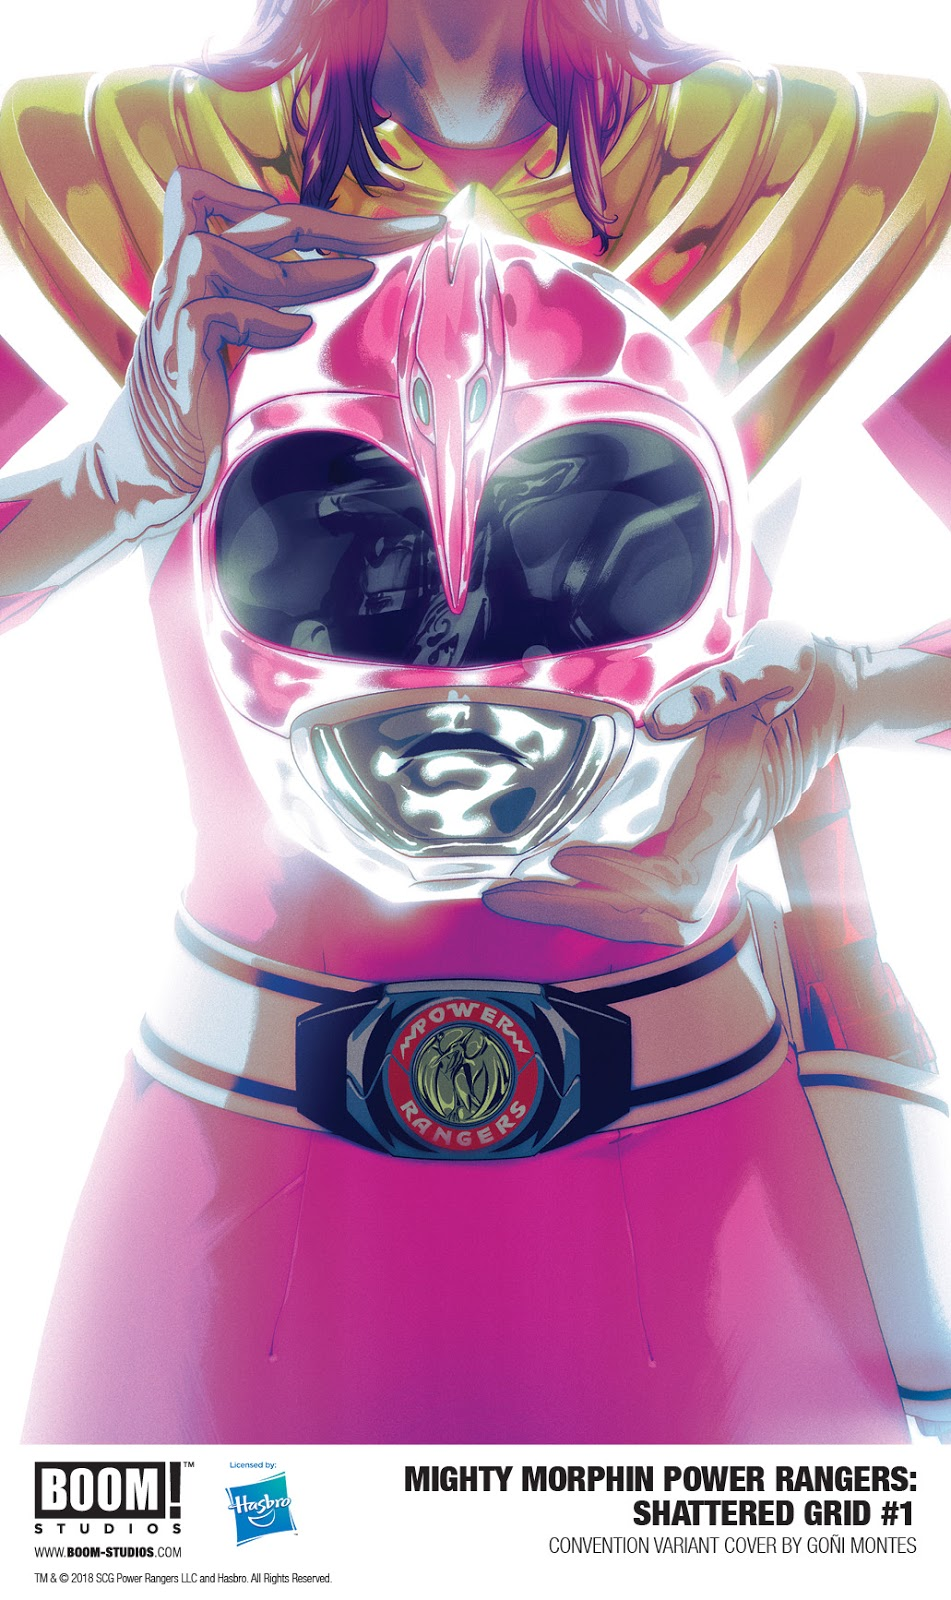 MIGHTY MORPHIN POWER RANGERS: SHATTERED GRID #1